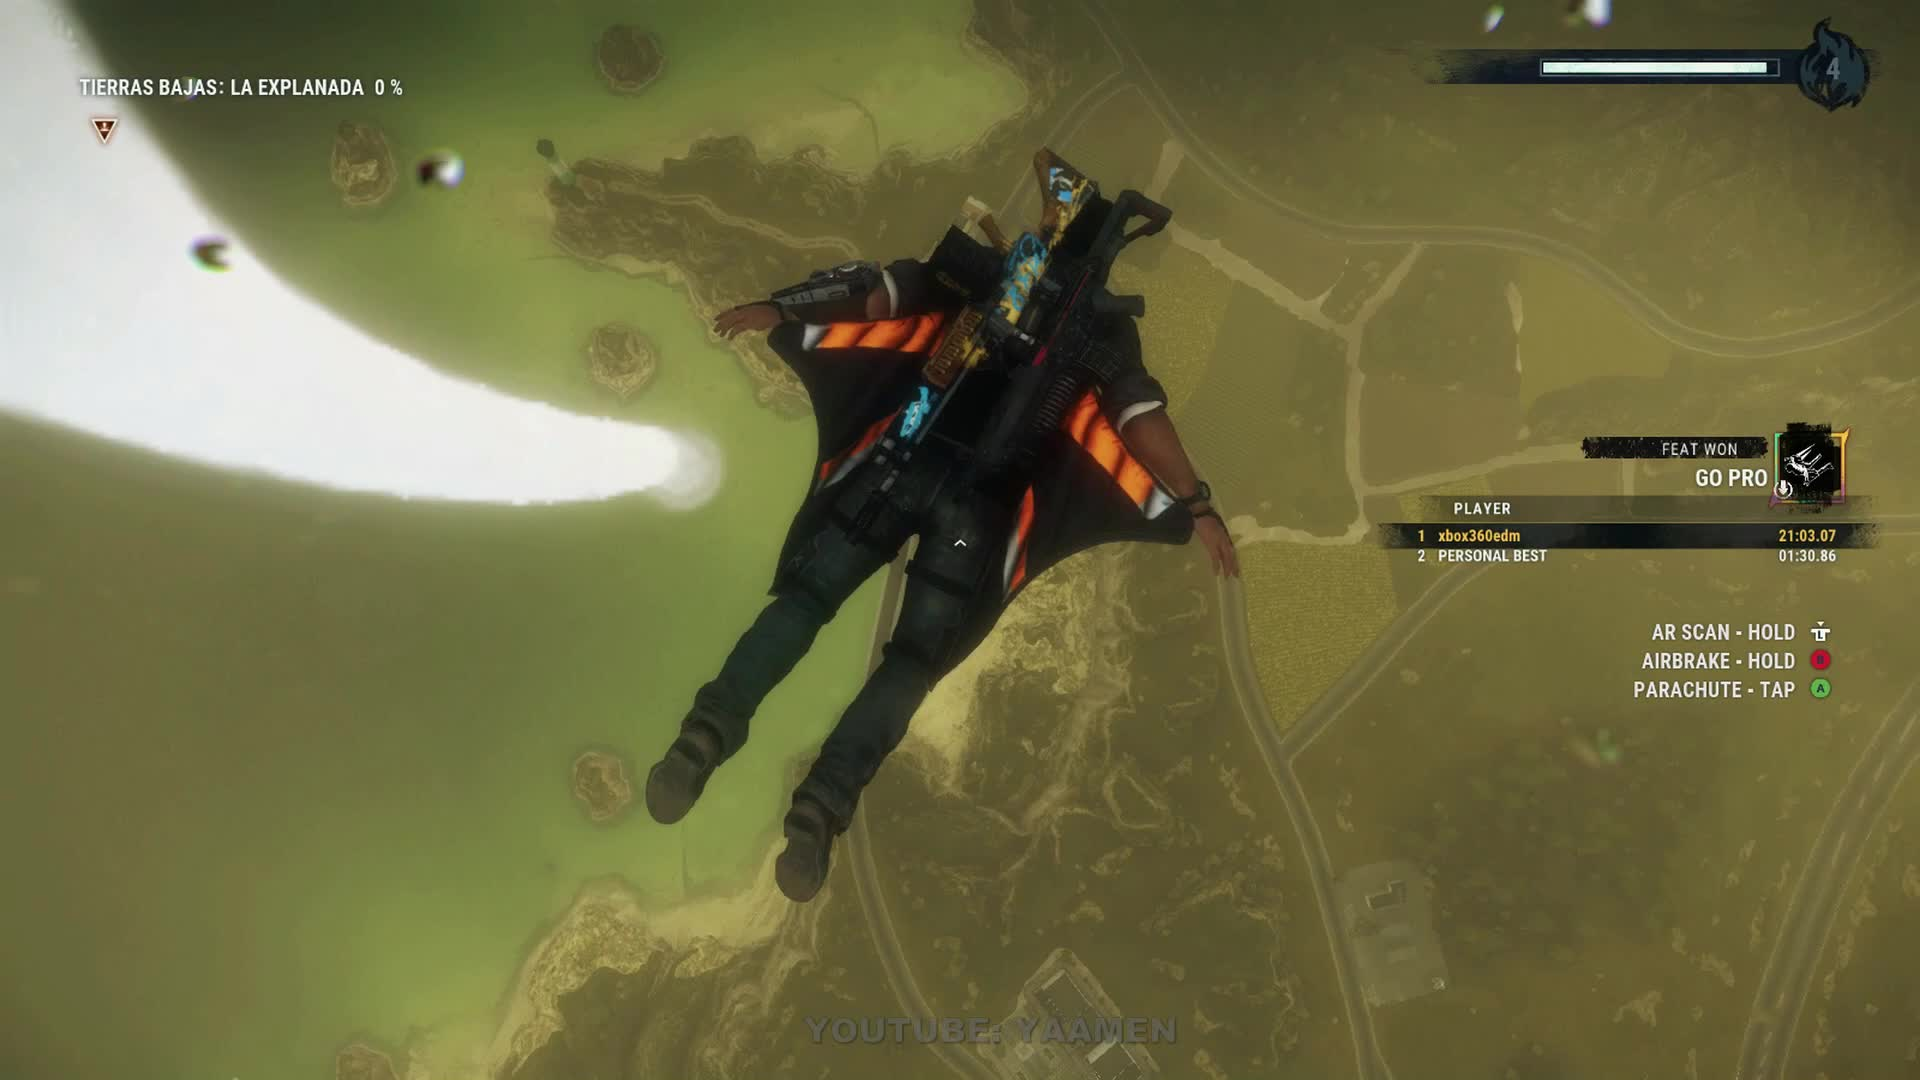 GAMEPLAY, GOPRO FEAT, JUST CAUSE 4, TORNADO, WINGSUIT, JUST CAUSE 4 - CIRCLING TORNADO IN WINGSUIT FOR OVER 21 MINUTES GIFs